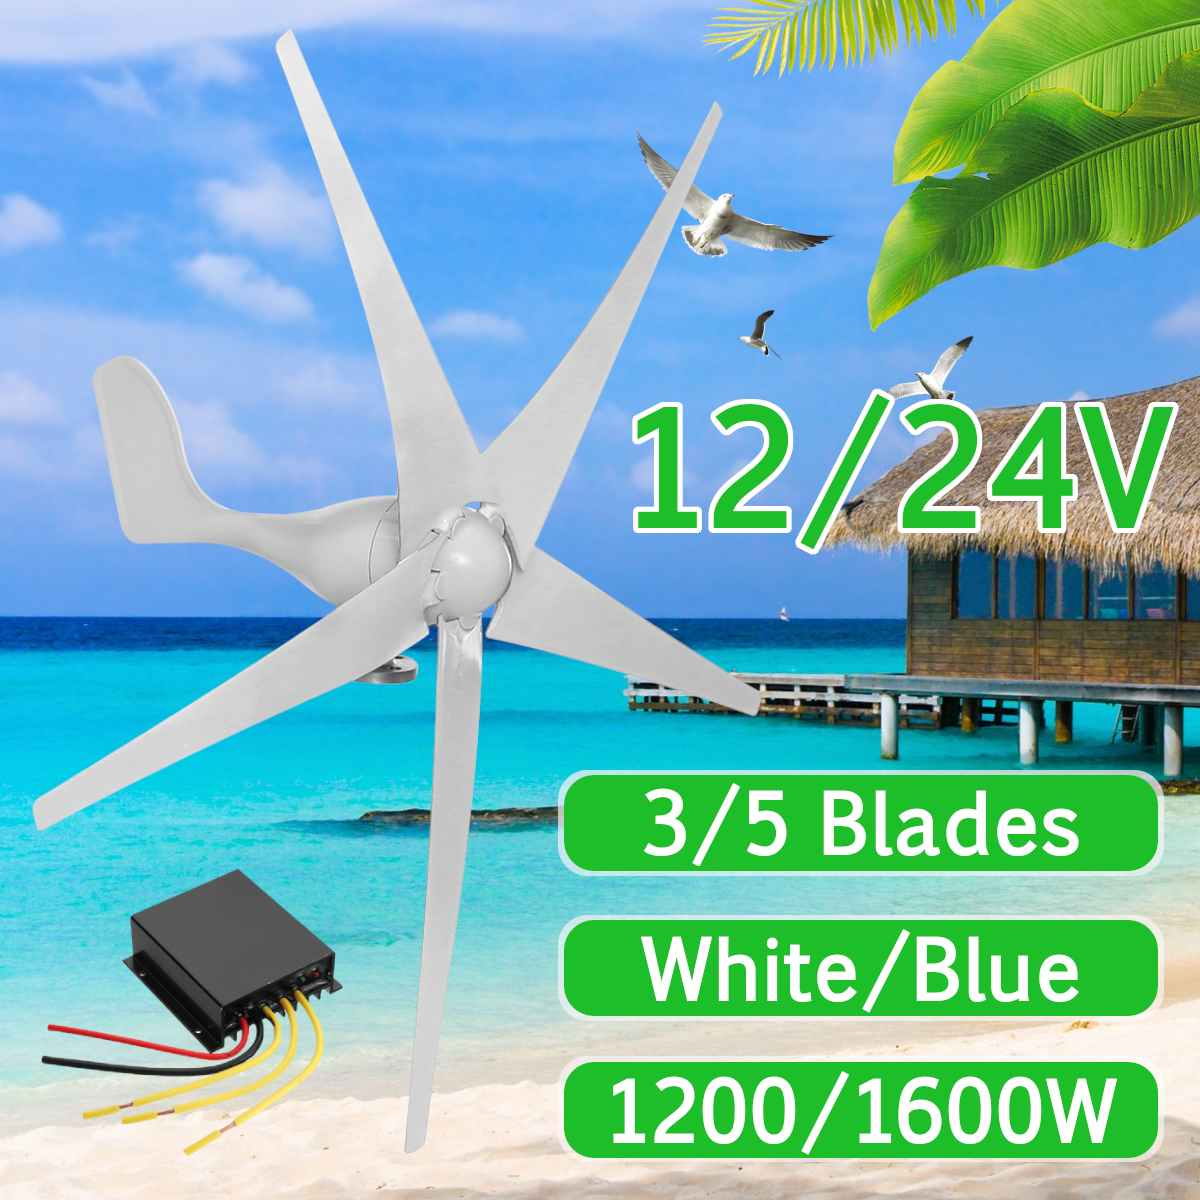 1200/1600W Wind for Turbine Generator3/5 Wind Blades Option Wind Controller Gift Fit for Home Or Camping +Mounting accessories-in Alternative Energy Generators from Home Improvement